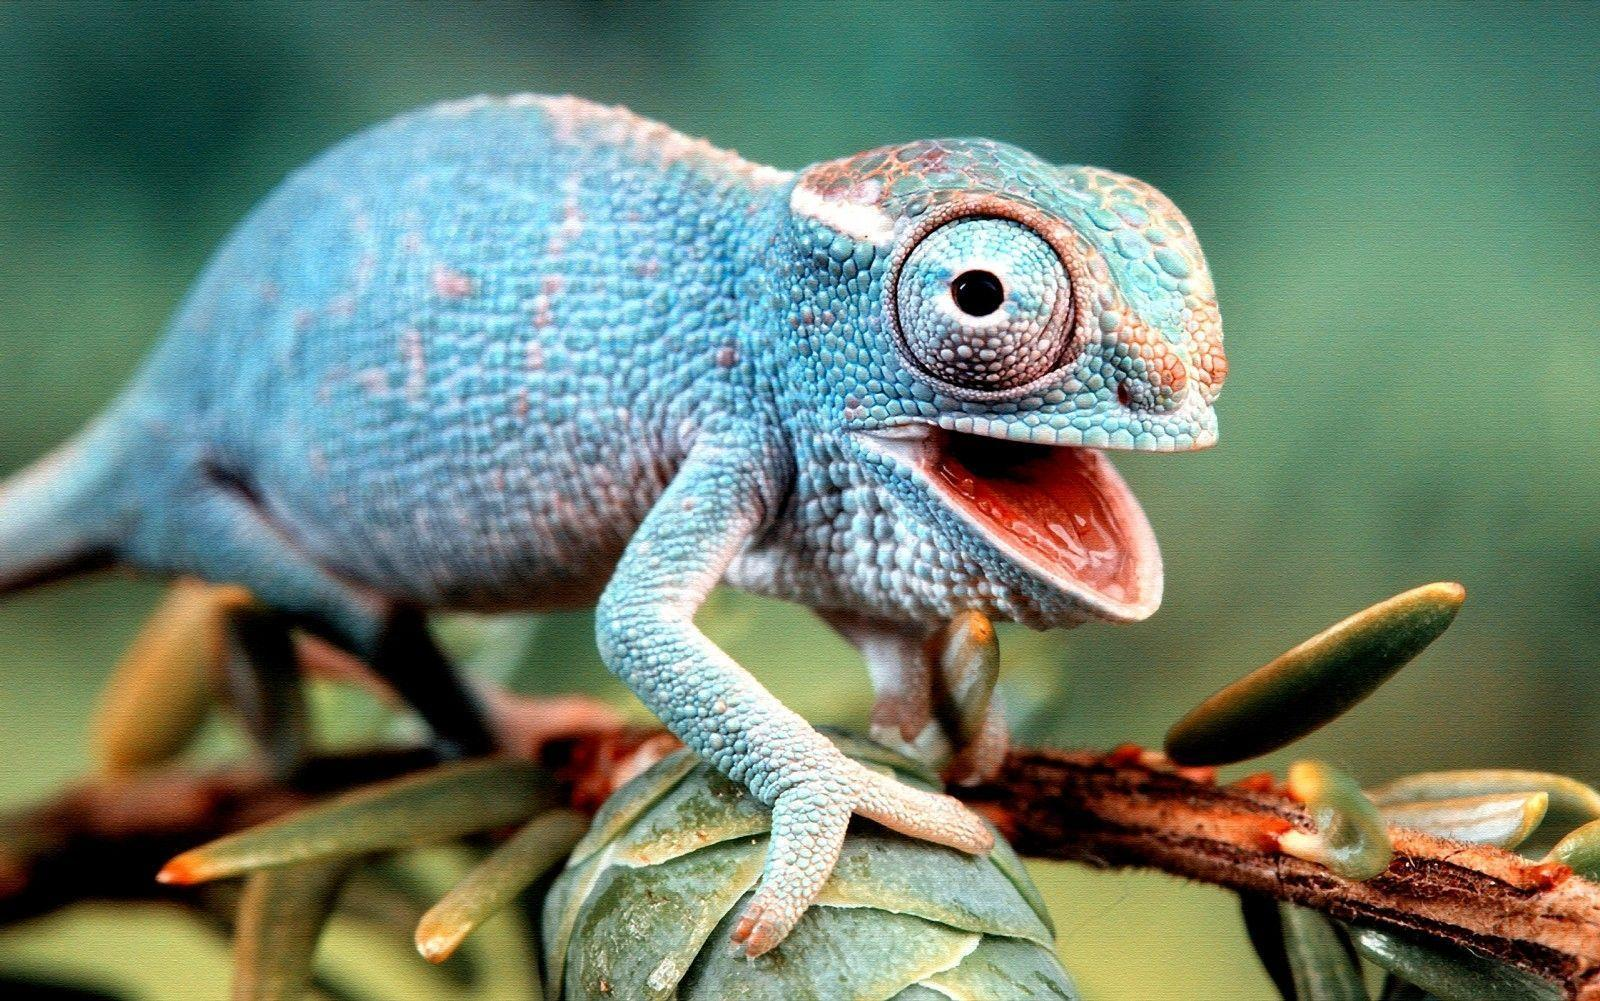 Download Colorful Lizard Wallpapers 21416 1600x1001 px High